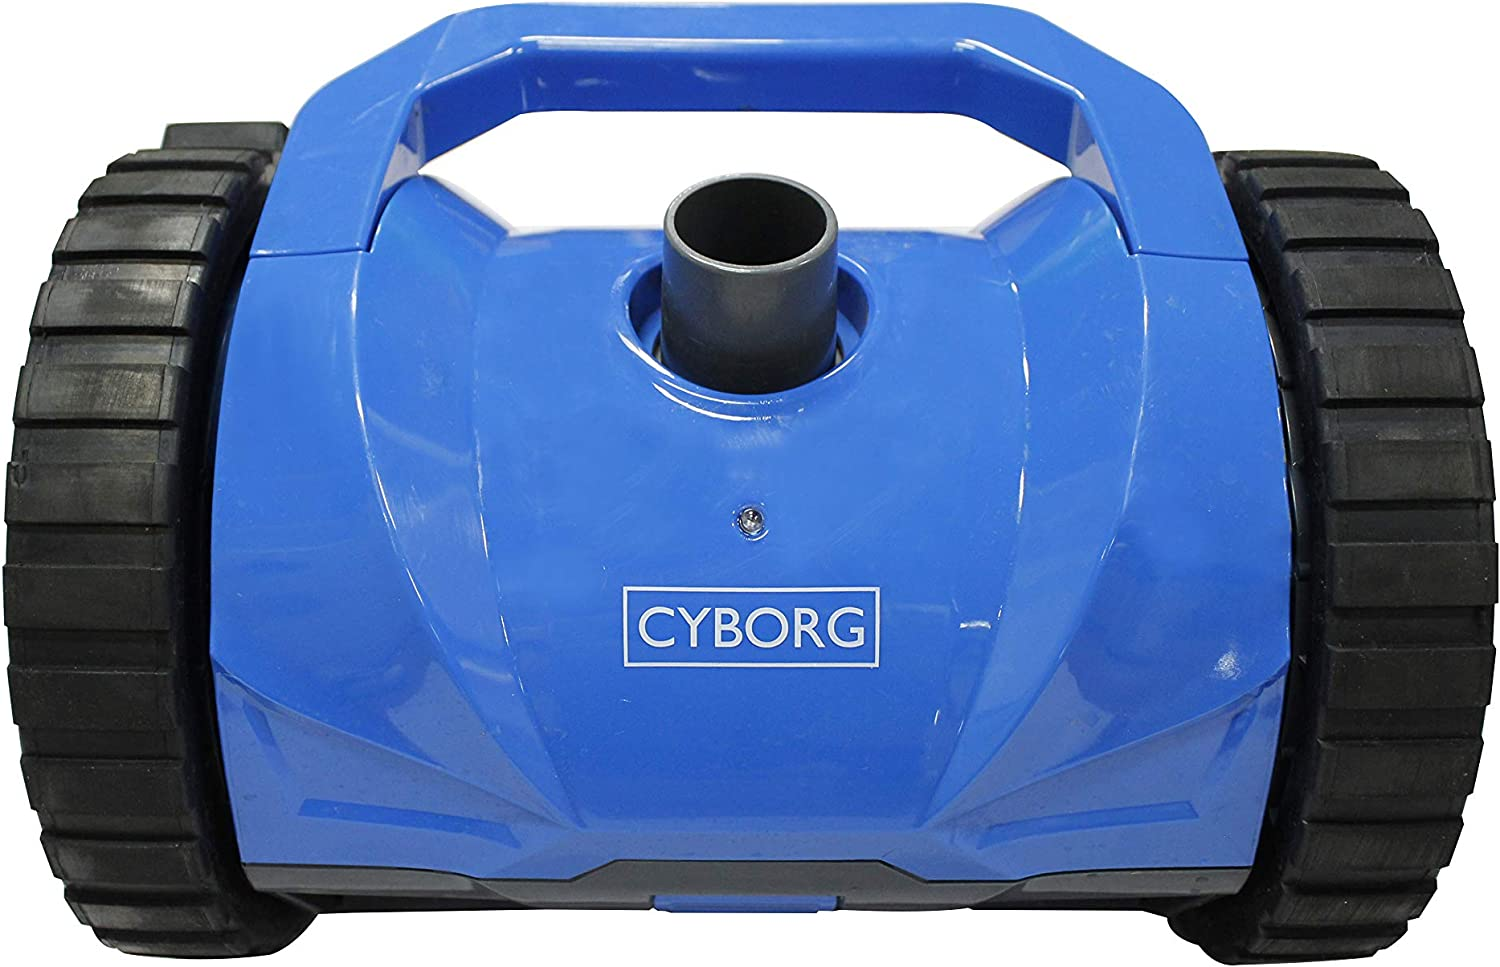 Cyborg Inground Automatic Pool Cleaner